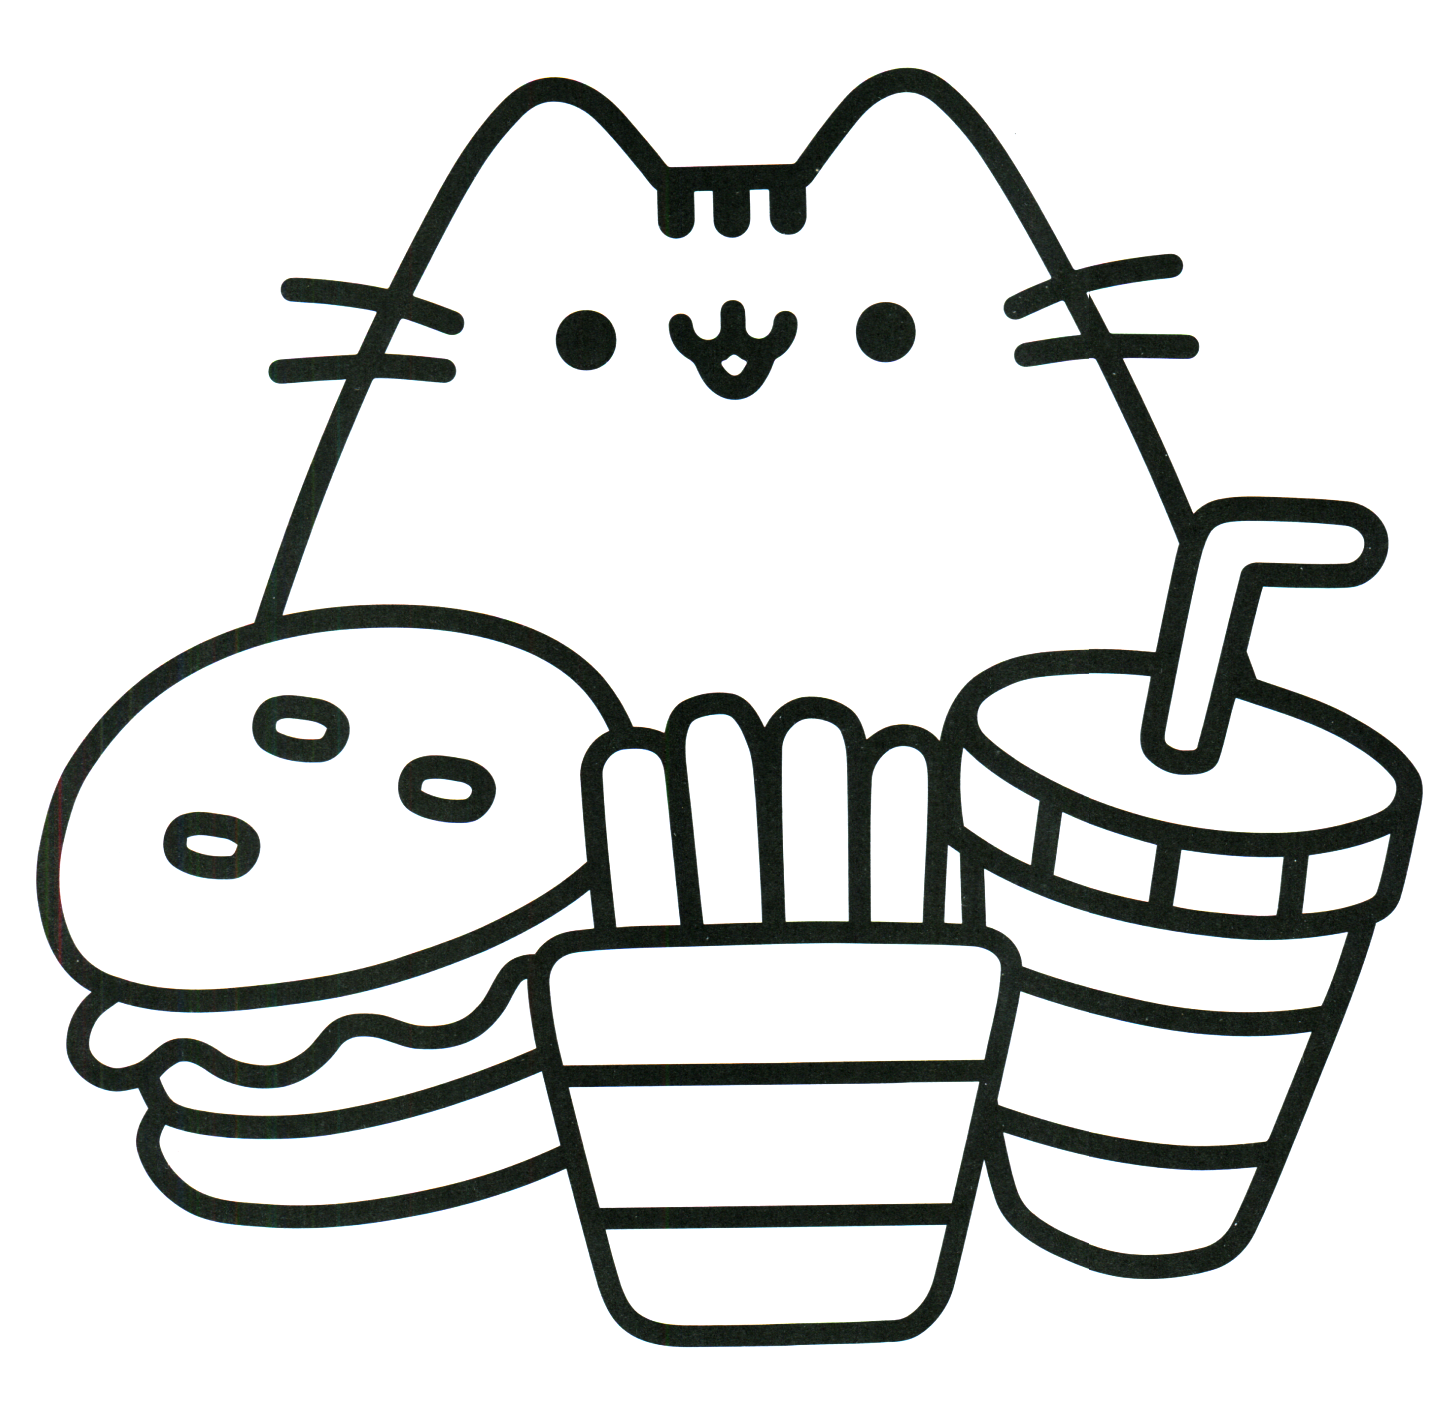 1089x1370 Peppa Pig Coloring Page Free Printable Pages 1430x1424 Pusheen Book The Cat